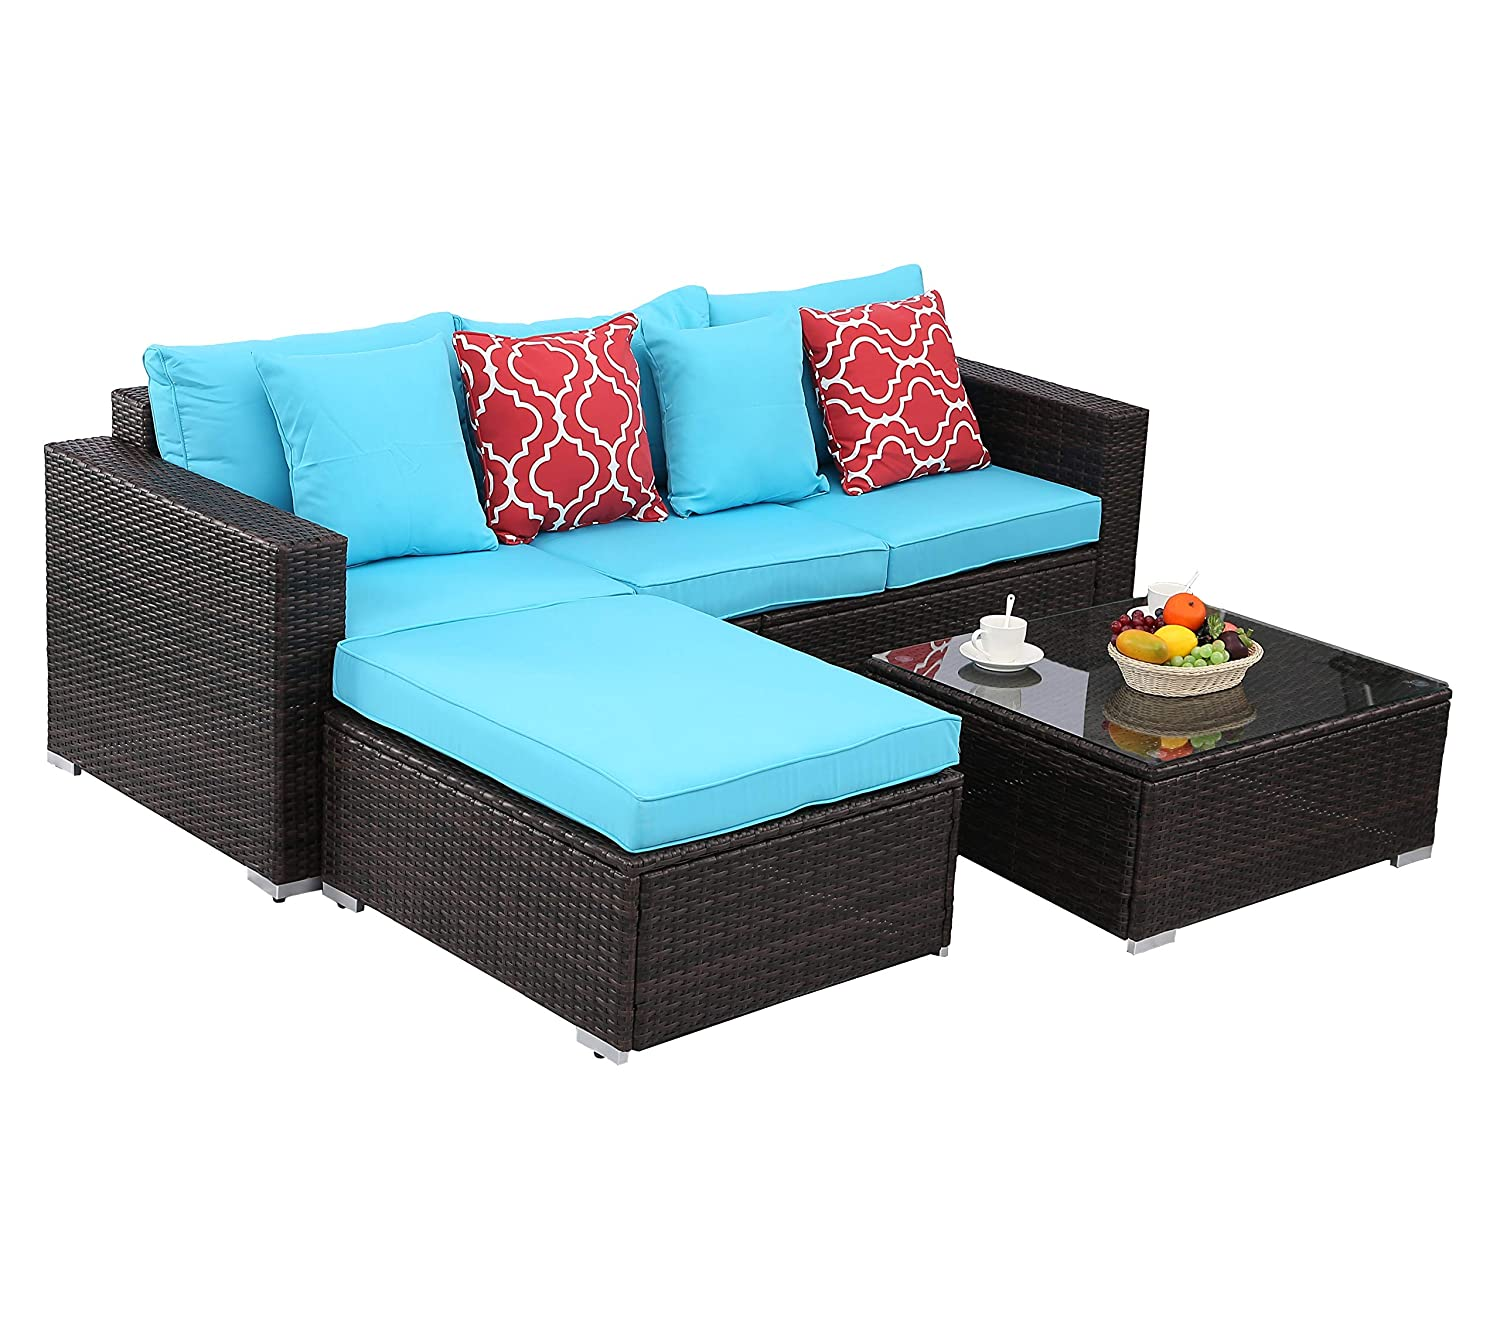 Do4U 4pcs Outdoor Patio Garden Rattan Wicker Sofa Set Sectional Furniture Set (4552-MIX-Turquoise)